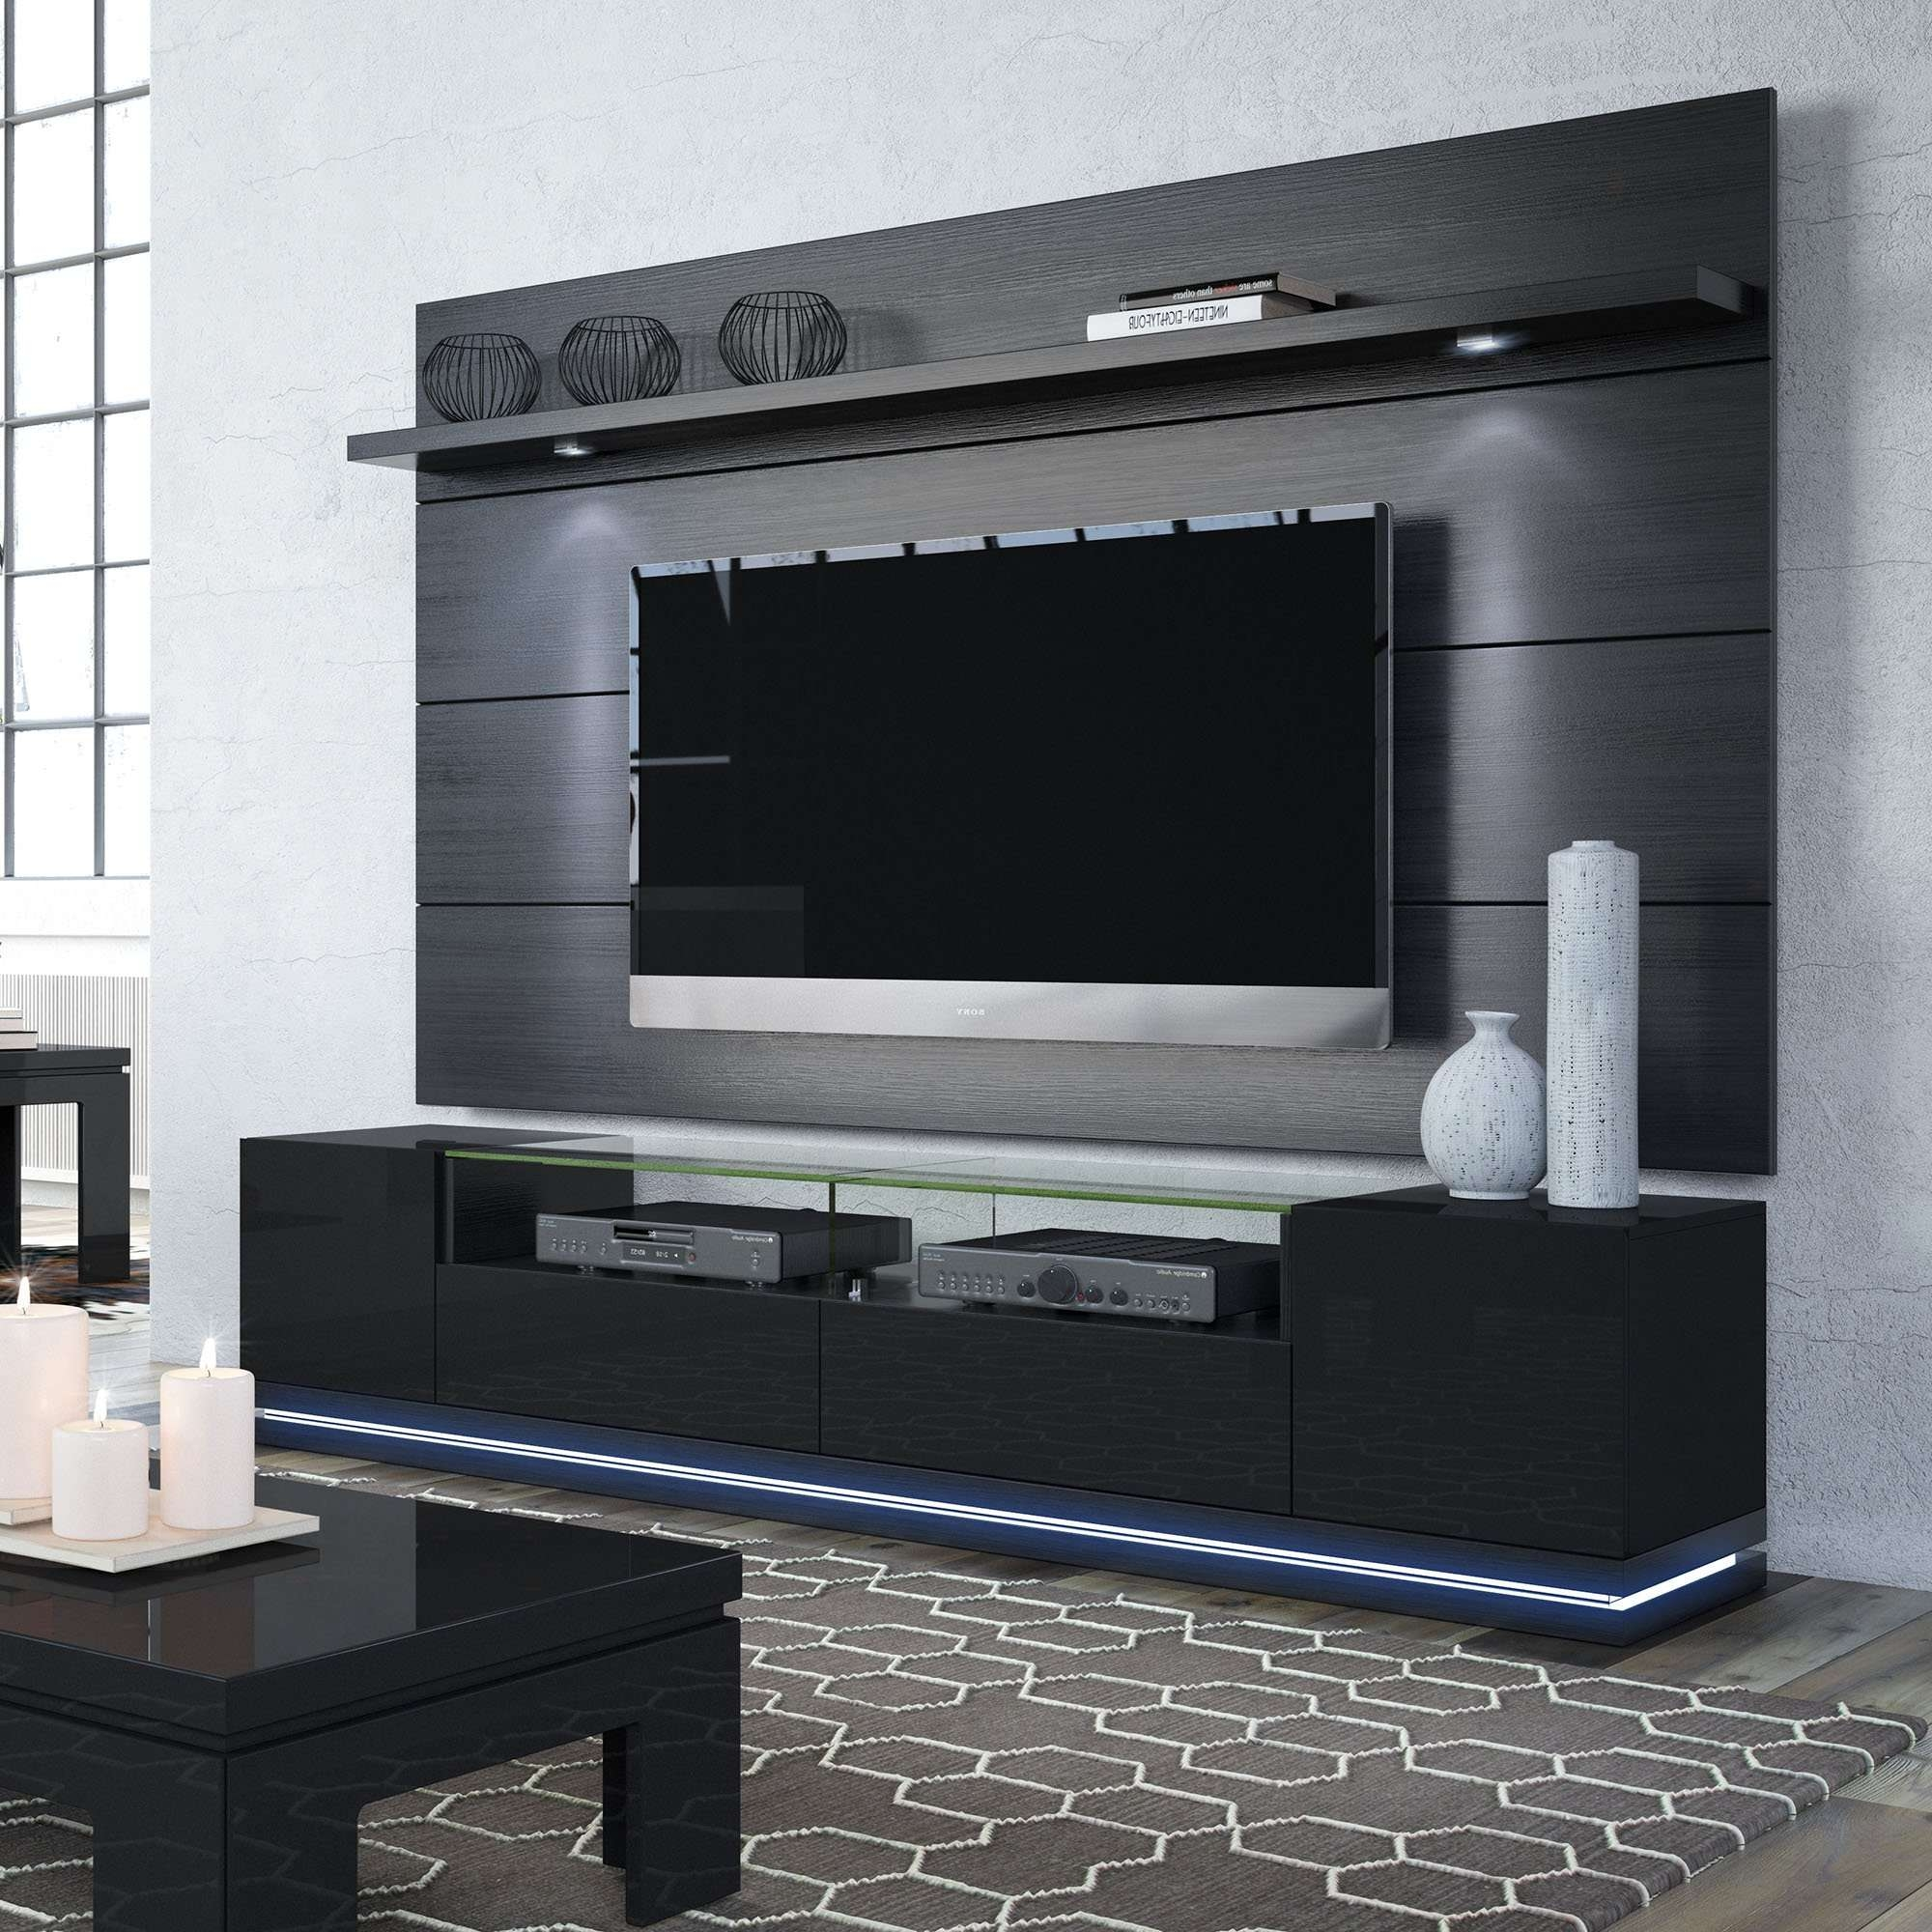 Vanderbilt Black Gloss & Black Matte Tv Stand & Cabrini 2.2 With Regard To Shiny Black Tv Stands (Gallery 11 of 15)